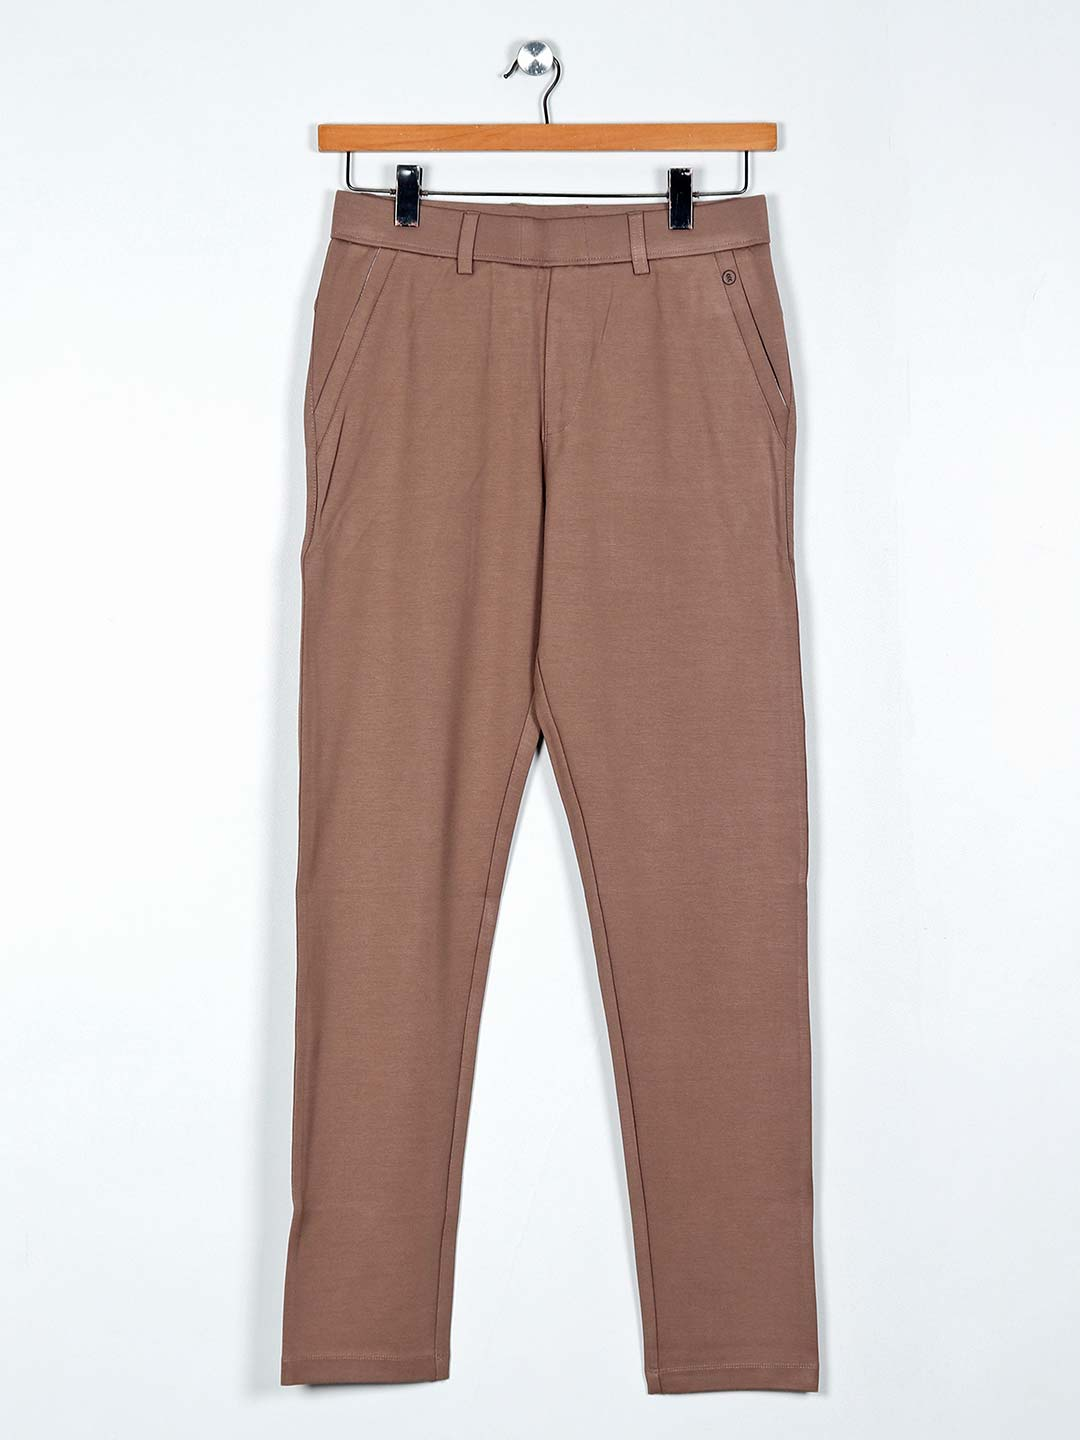 Maml brown cotton solid night mens track pant?imgeng=w_400